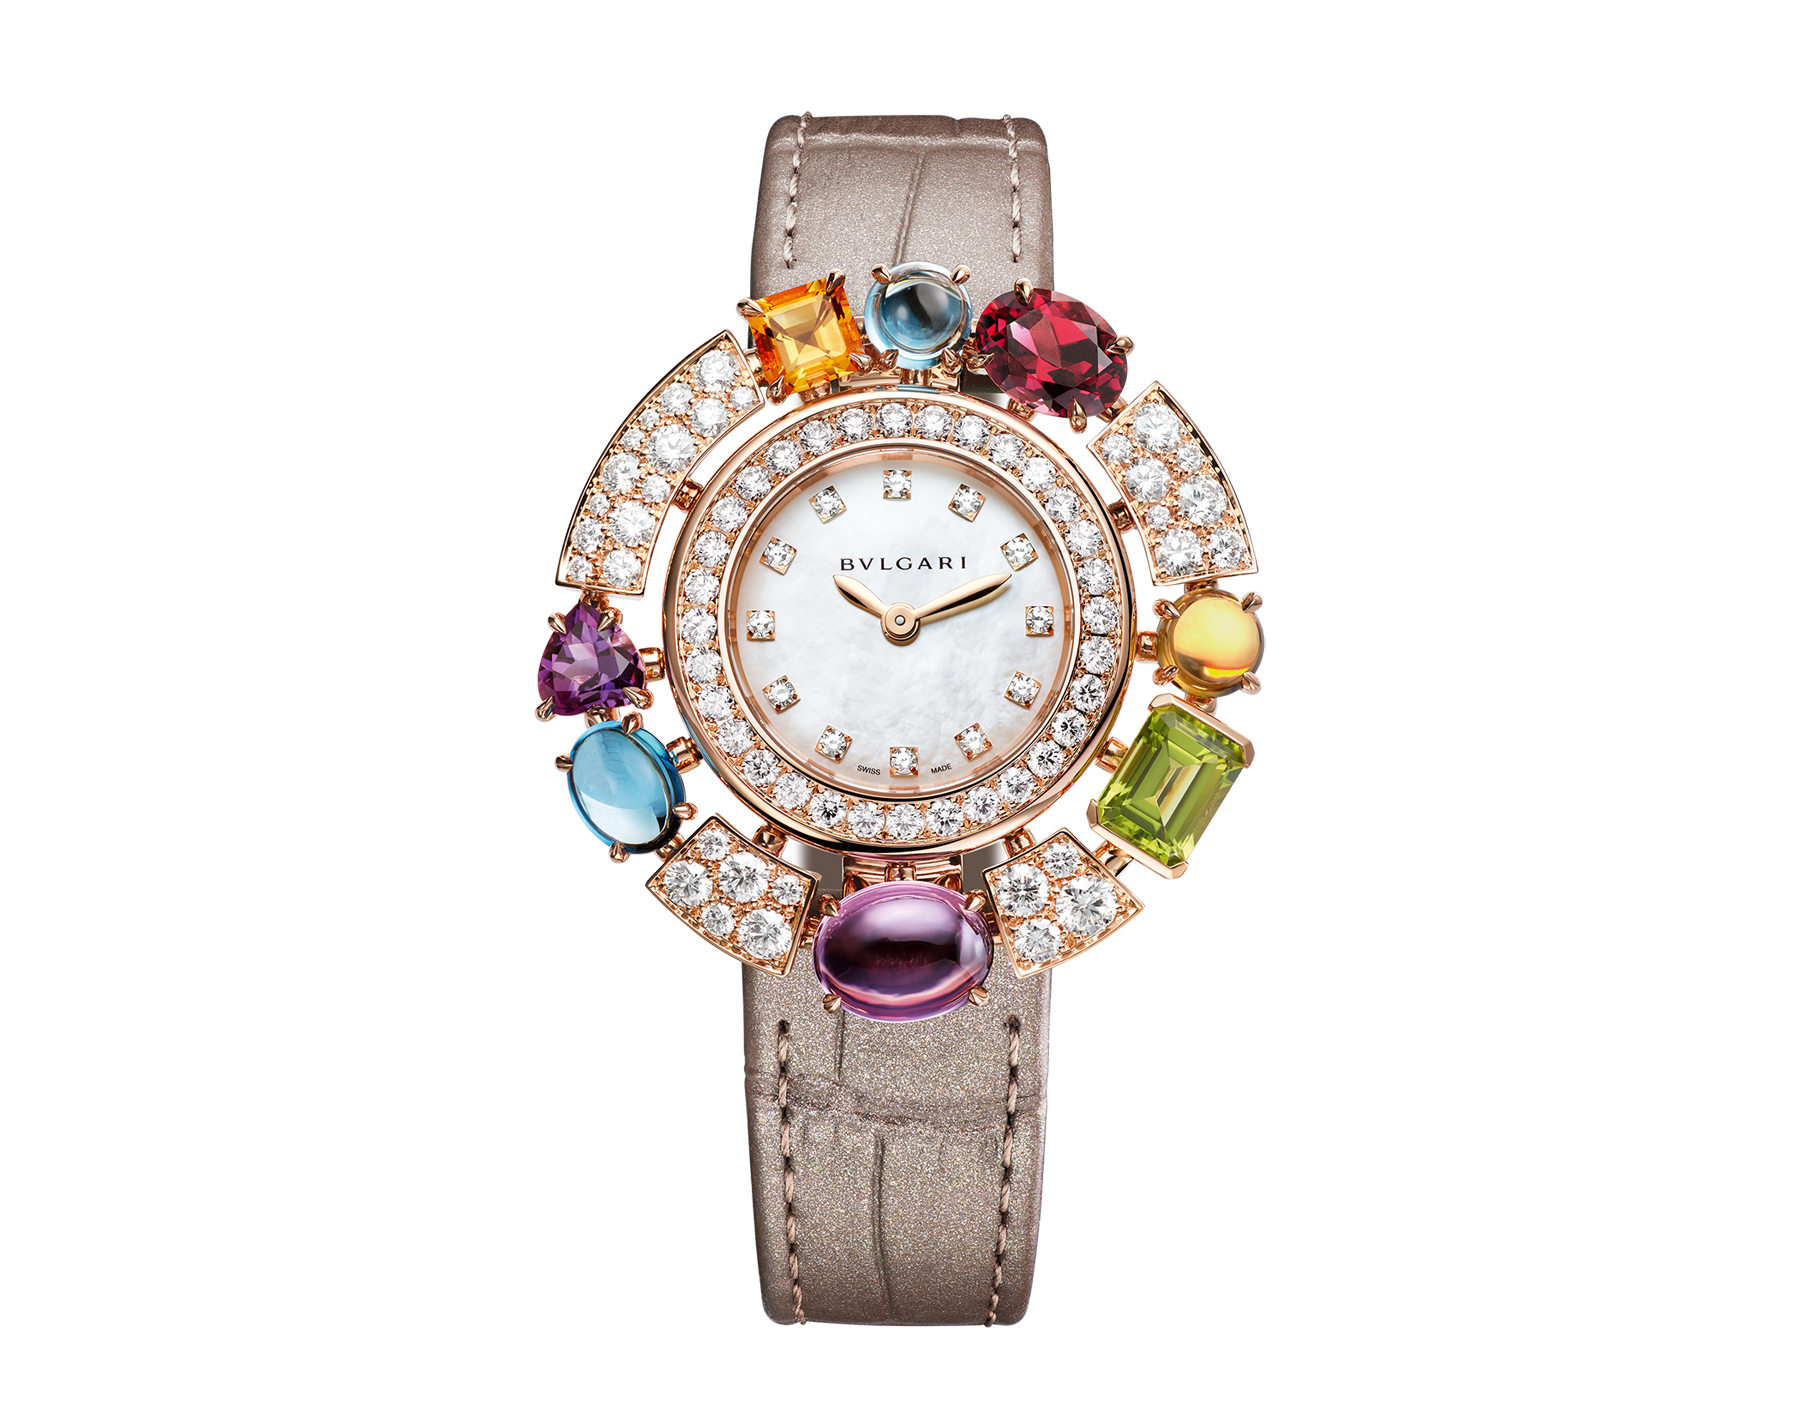 Allegra High Jewelry watch with 18 kt rose gold case set with brilliant-cut diamonds, two citrines, two amethysts, a peridot, two blue topazes and a rhodolite, mother-of-pearl dial, diamond indexes and shiny taupe alligator bracelet. Water-resistant up to 30 meters. 103493 image 1